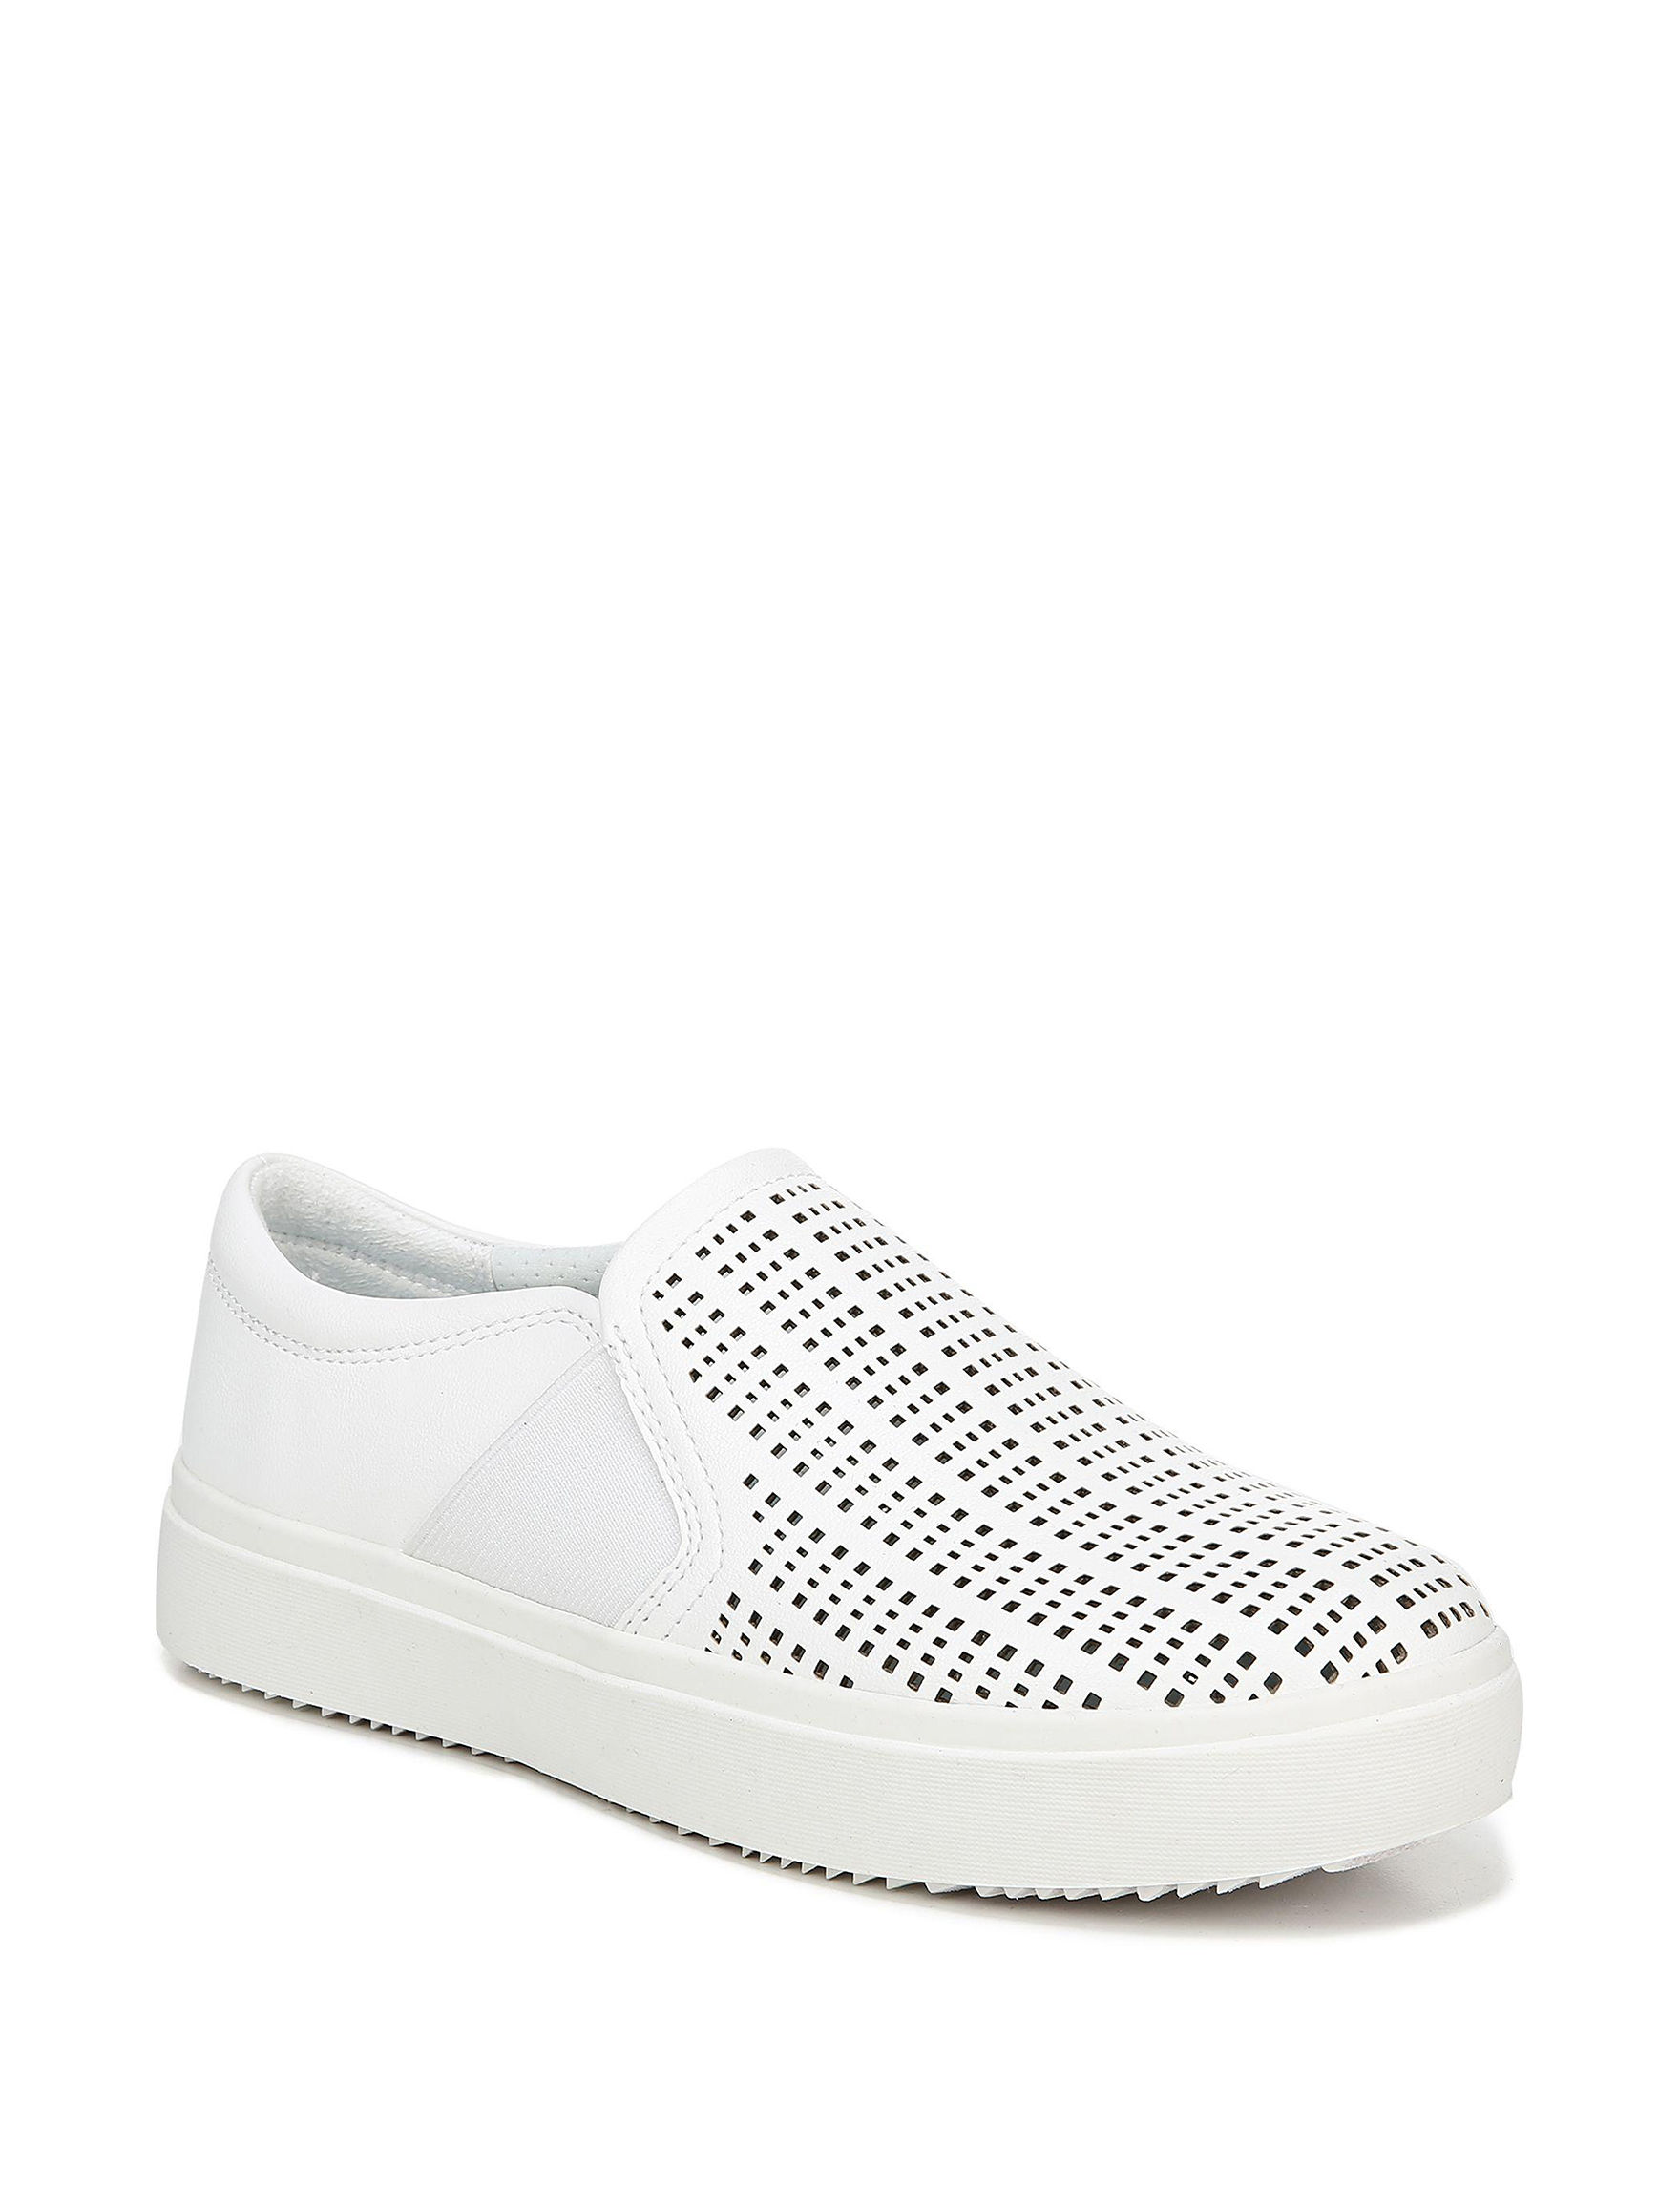 Dr. Scholl's White Comfort Shoes